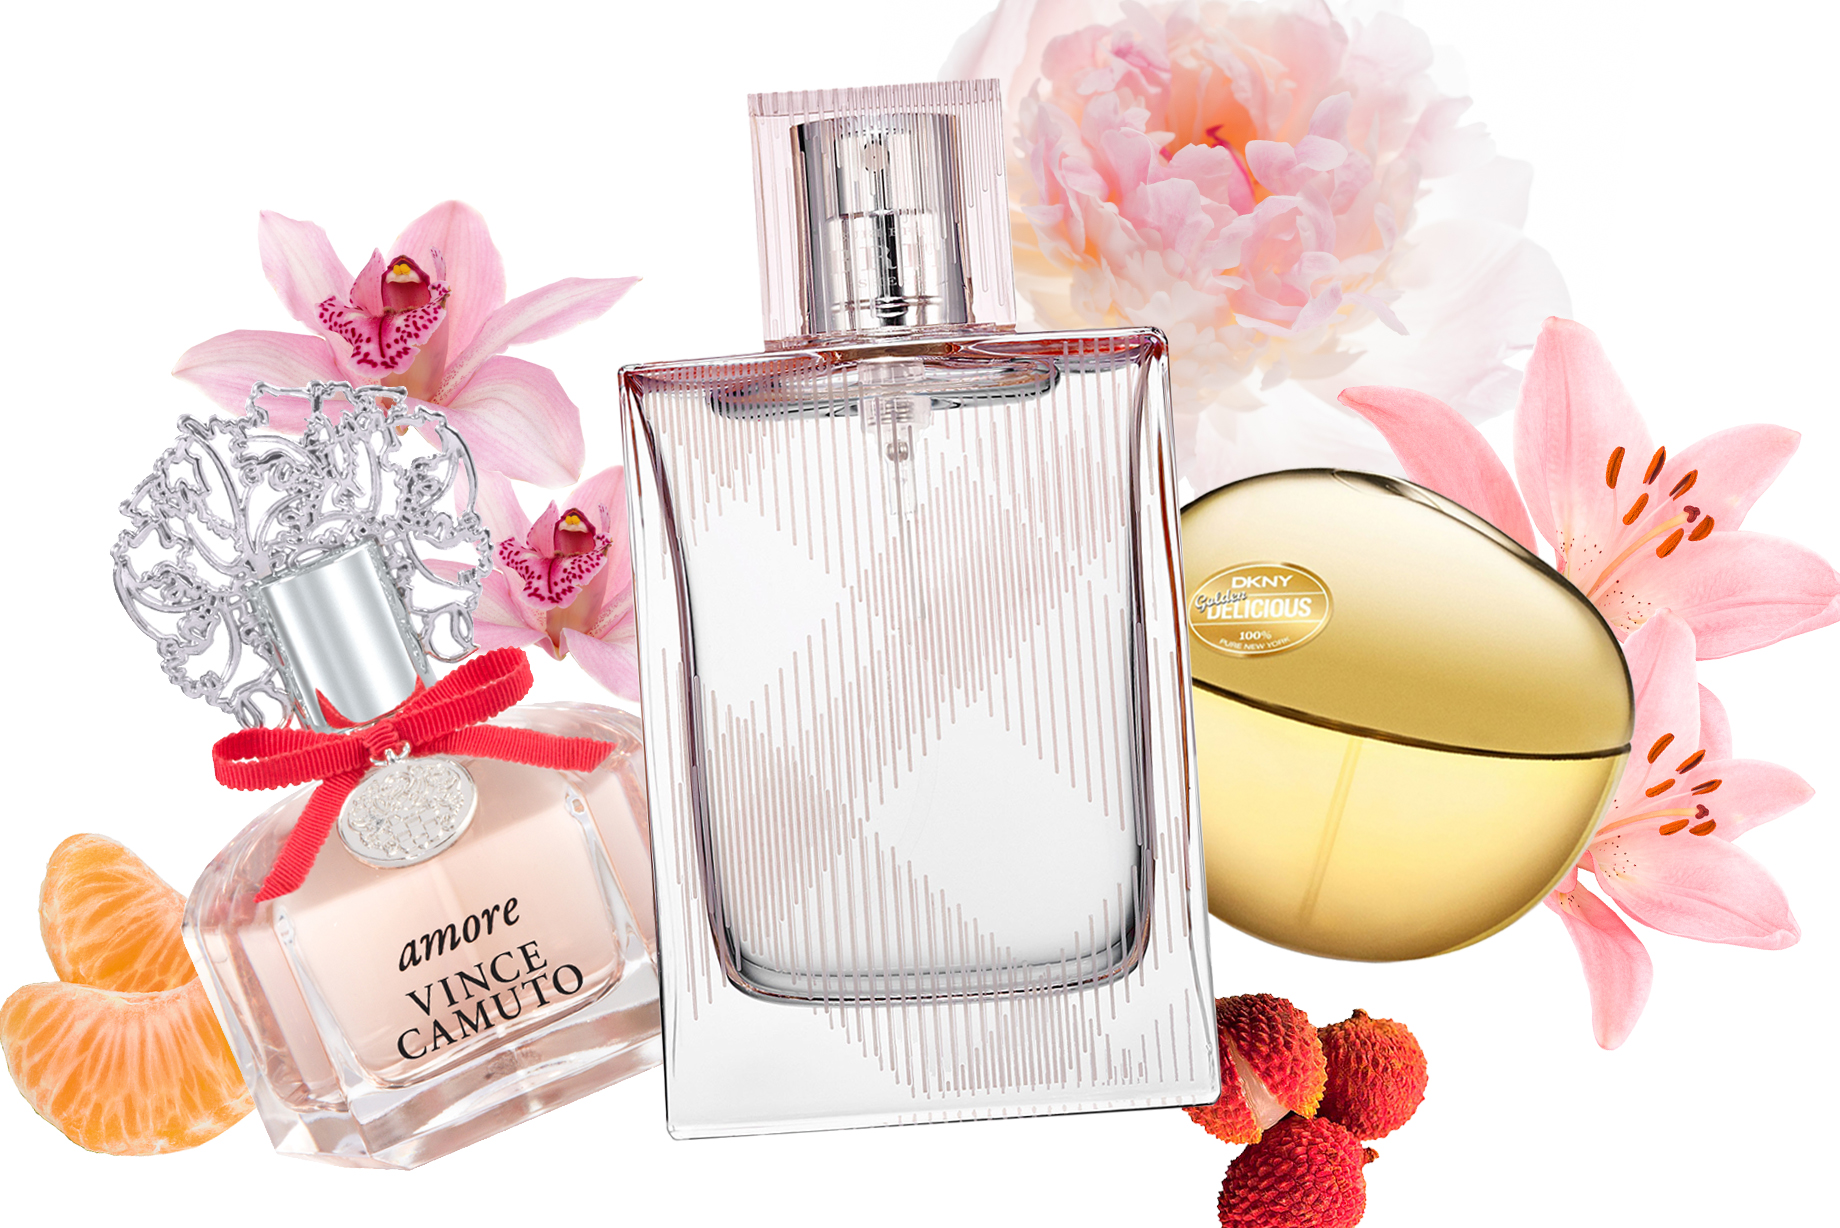 Top 3 Perfume Reccomendations for May